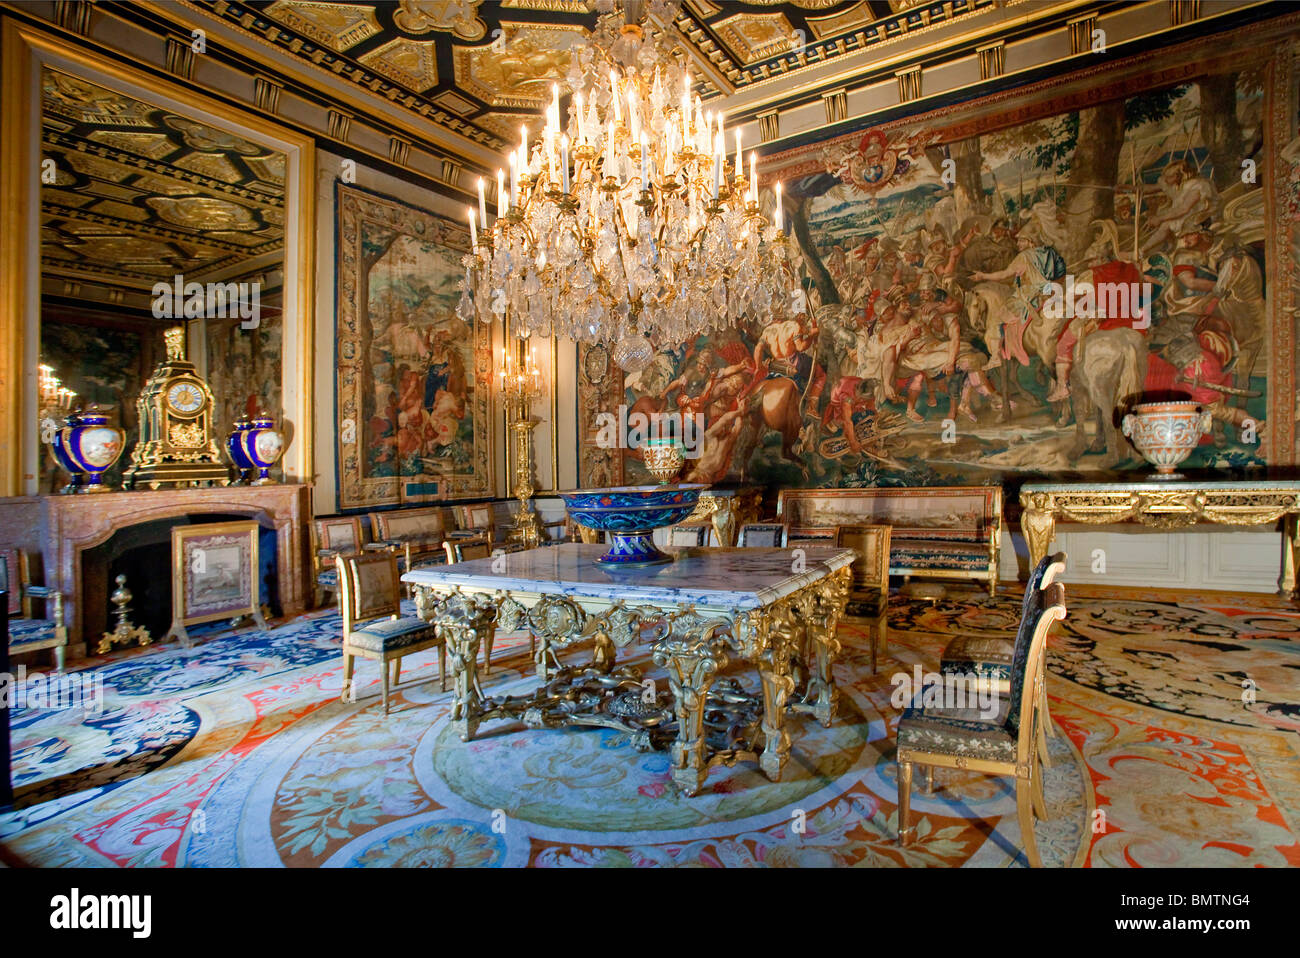 FRANCE, FONTAINEBLEAU CASTLE, THE POPE'S APARTMENT, - Stock Image